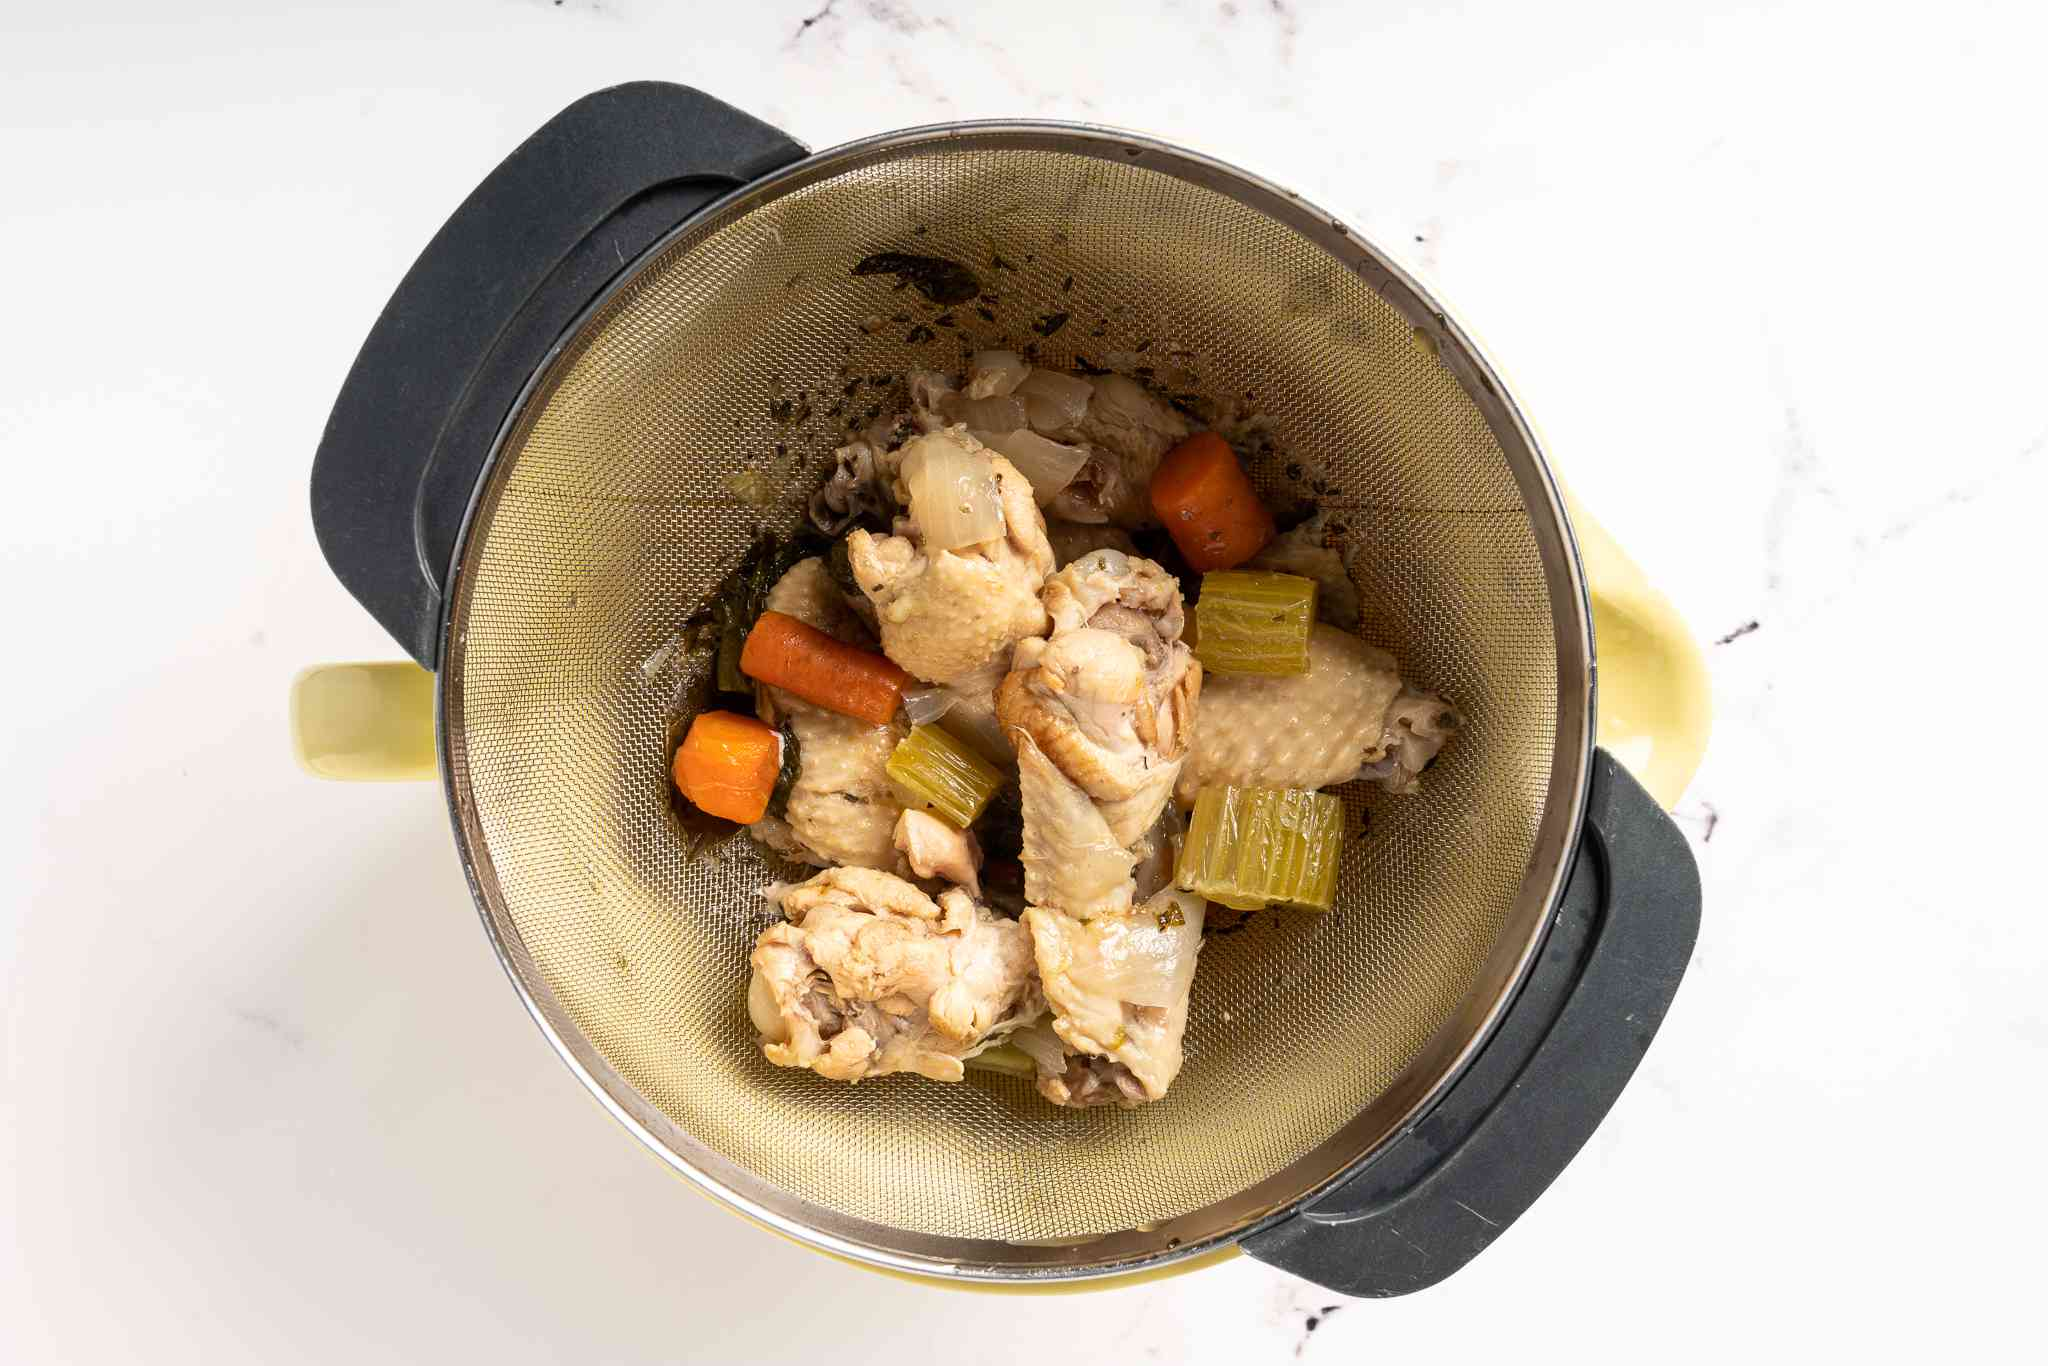 strain the liquid from the chicken and vegetables